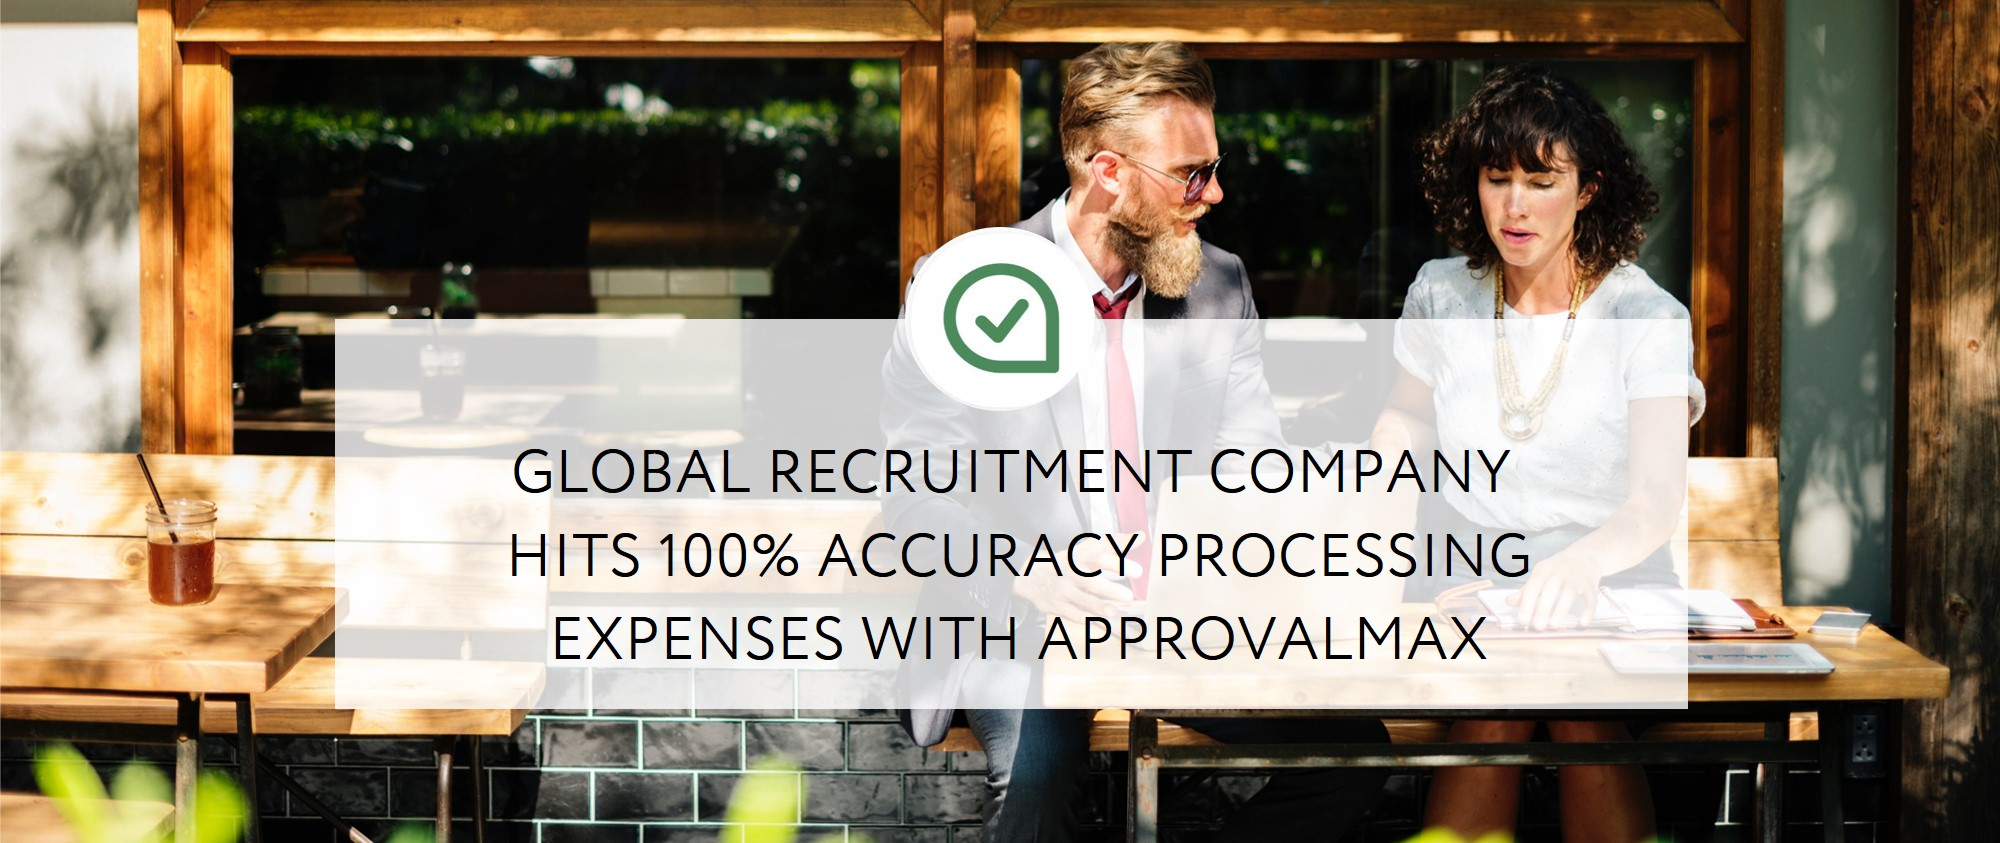 How global recruitment company hits 100% accuracy processing expenses